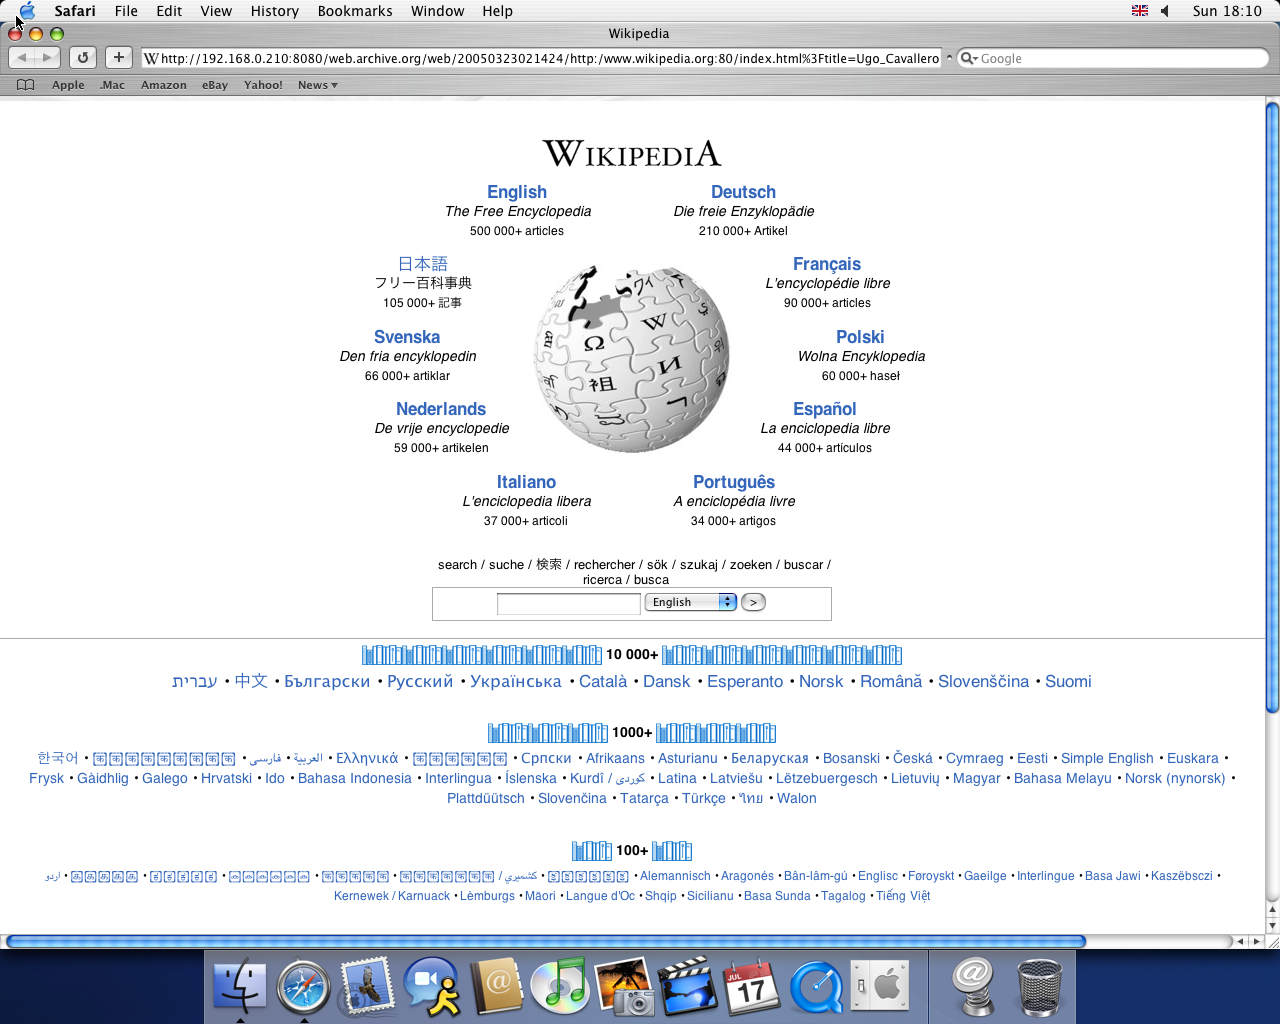 OS X 10.3 PPC with Safari 1.1 displaying a page from Wikipedia.org archived at March 23, 2005 at 02:14:24